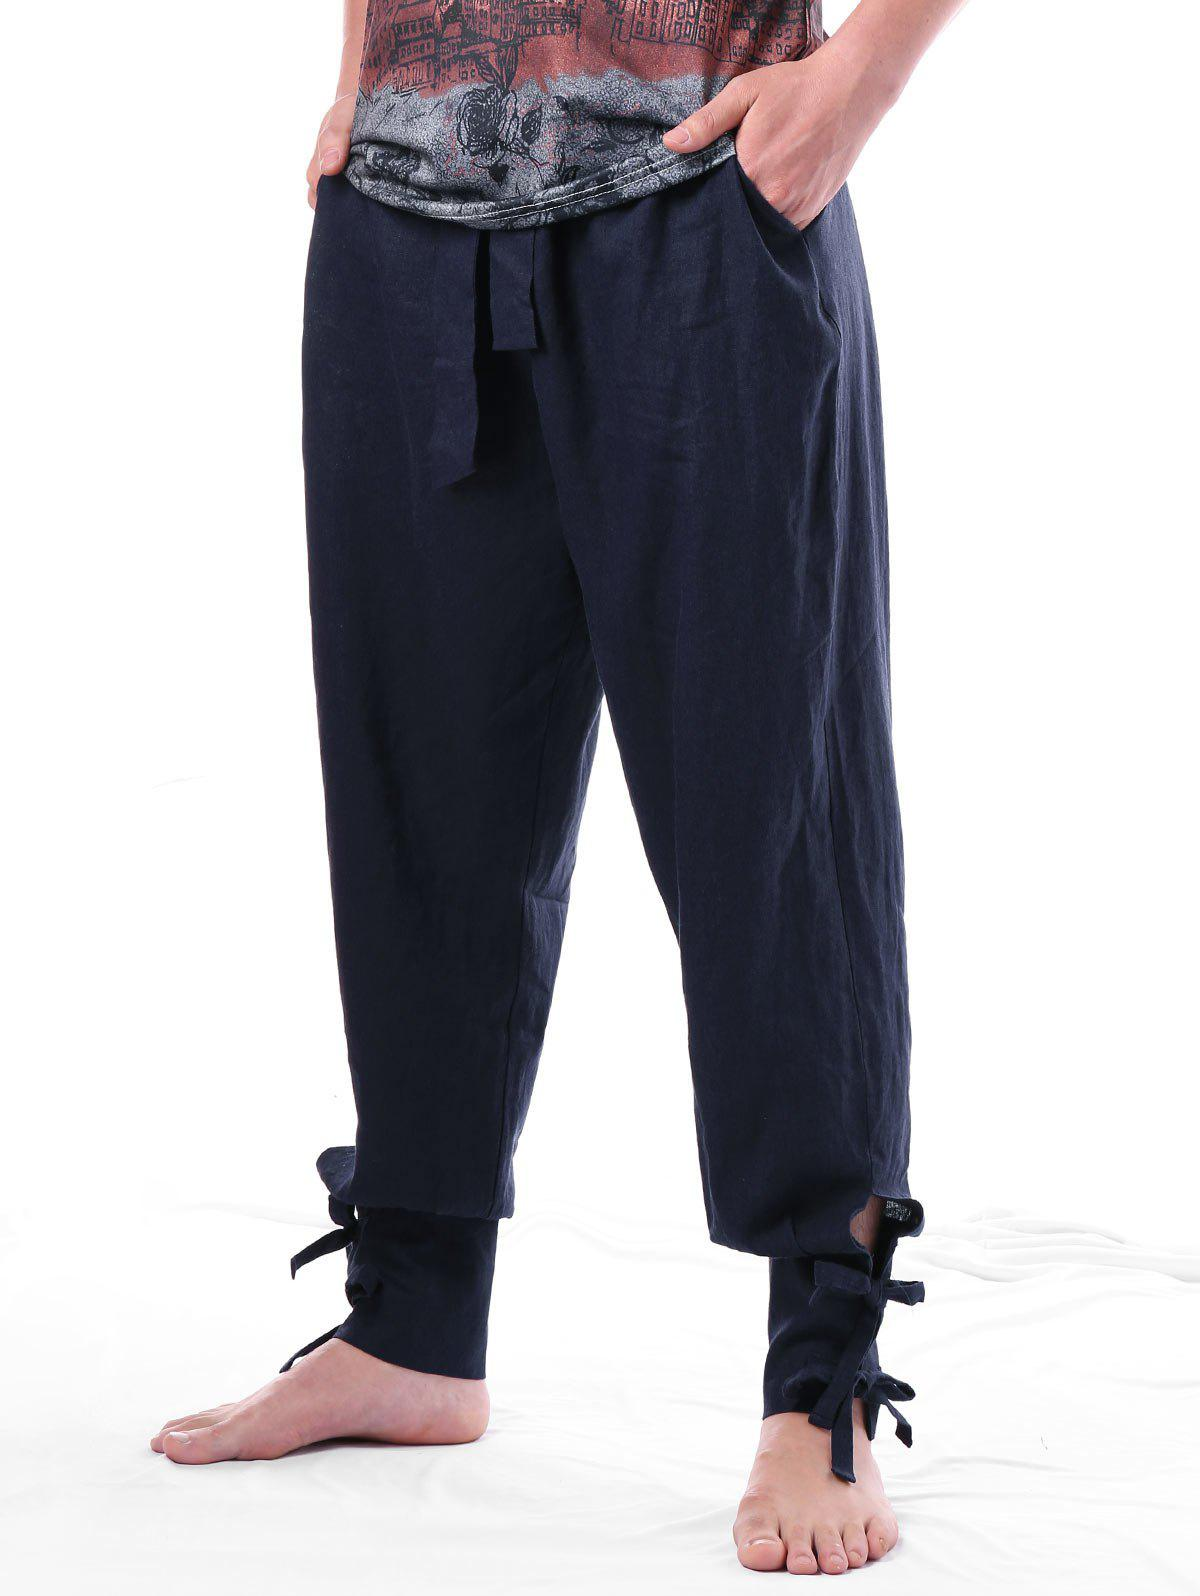 Bow Tie Narrow Feet with Belt Harem Pants, Dark slate blue